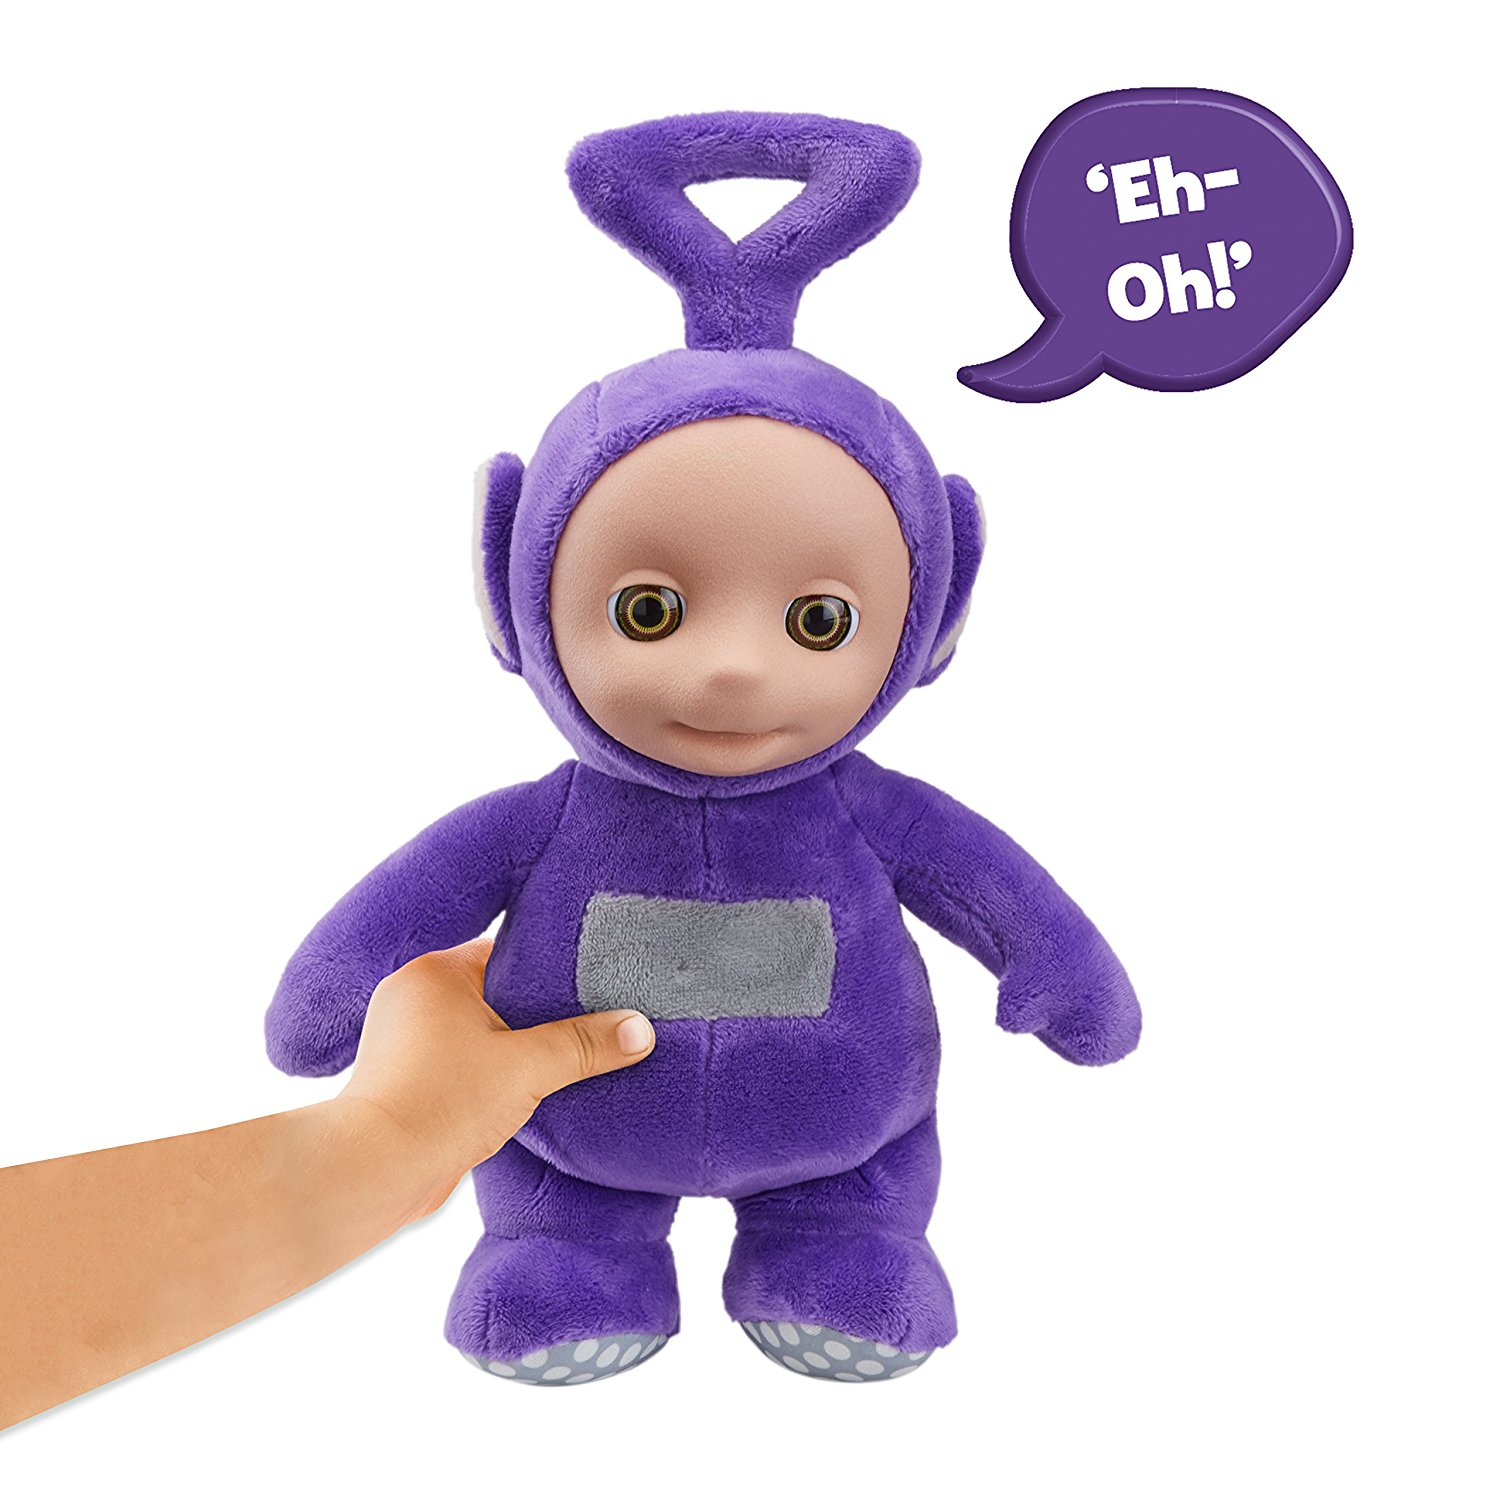 Teletubbies Soft Plush Talking Tinky Winky Toy (Purple)